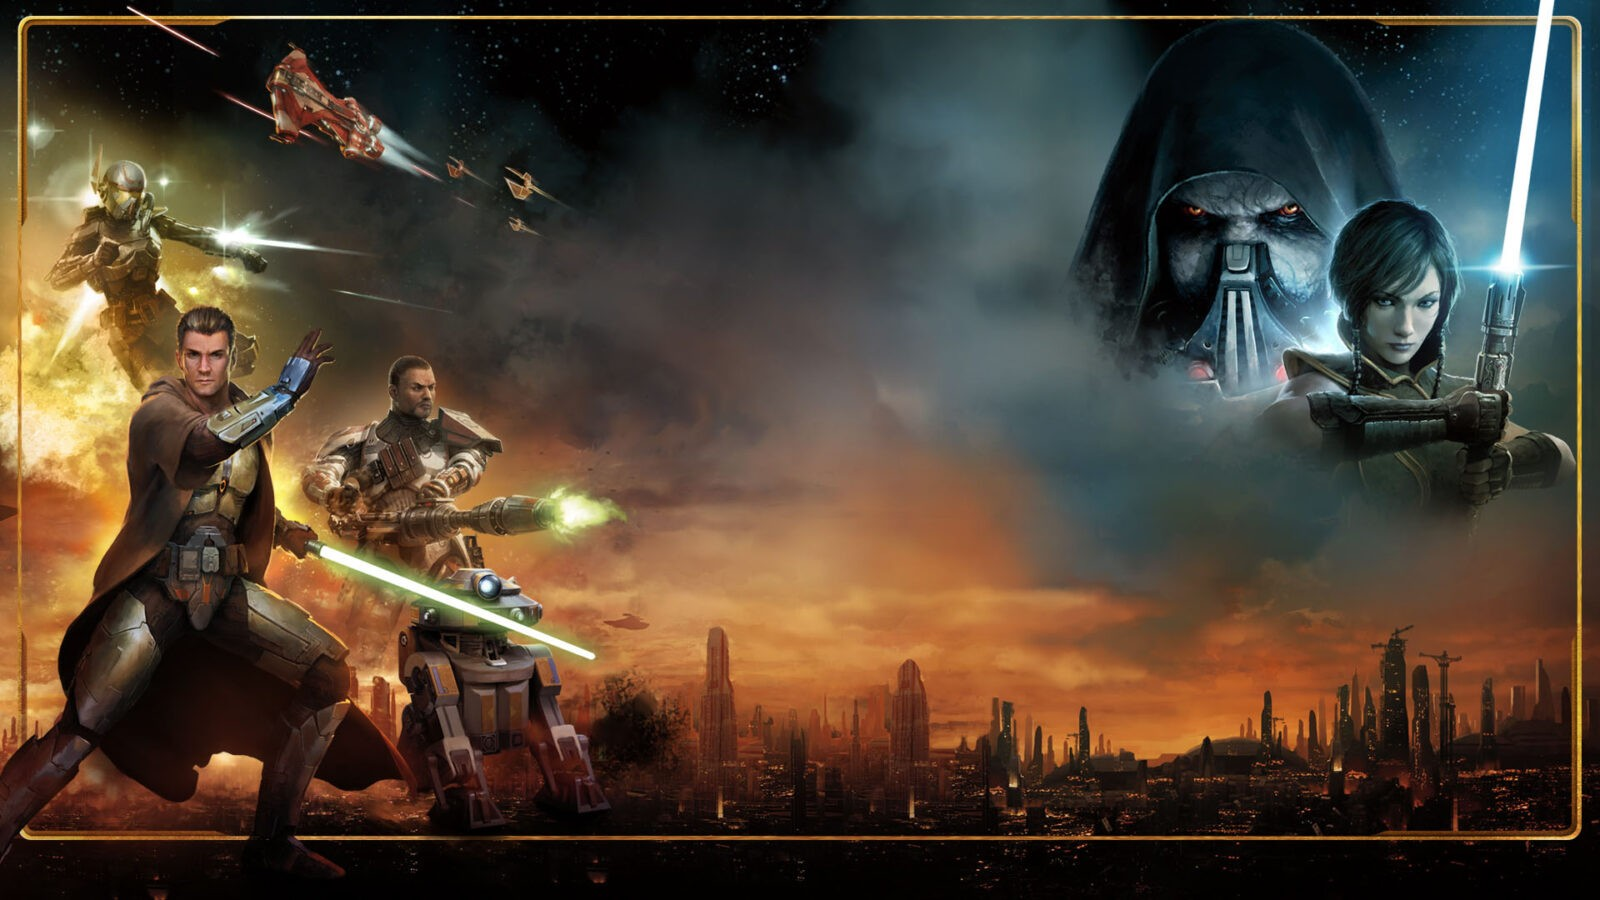 Star Wars The Old Republic Hd Wallpapers Free Download